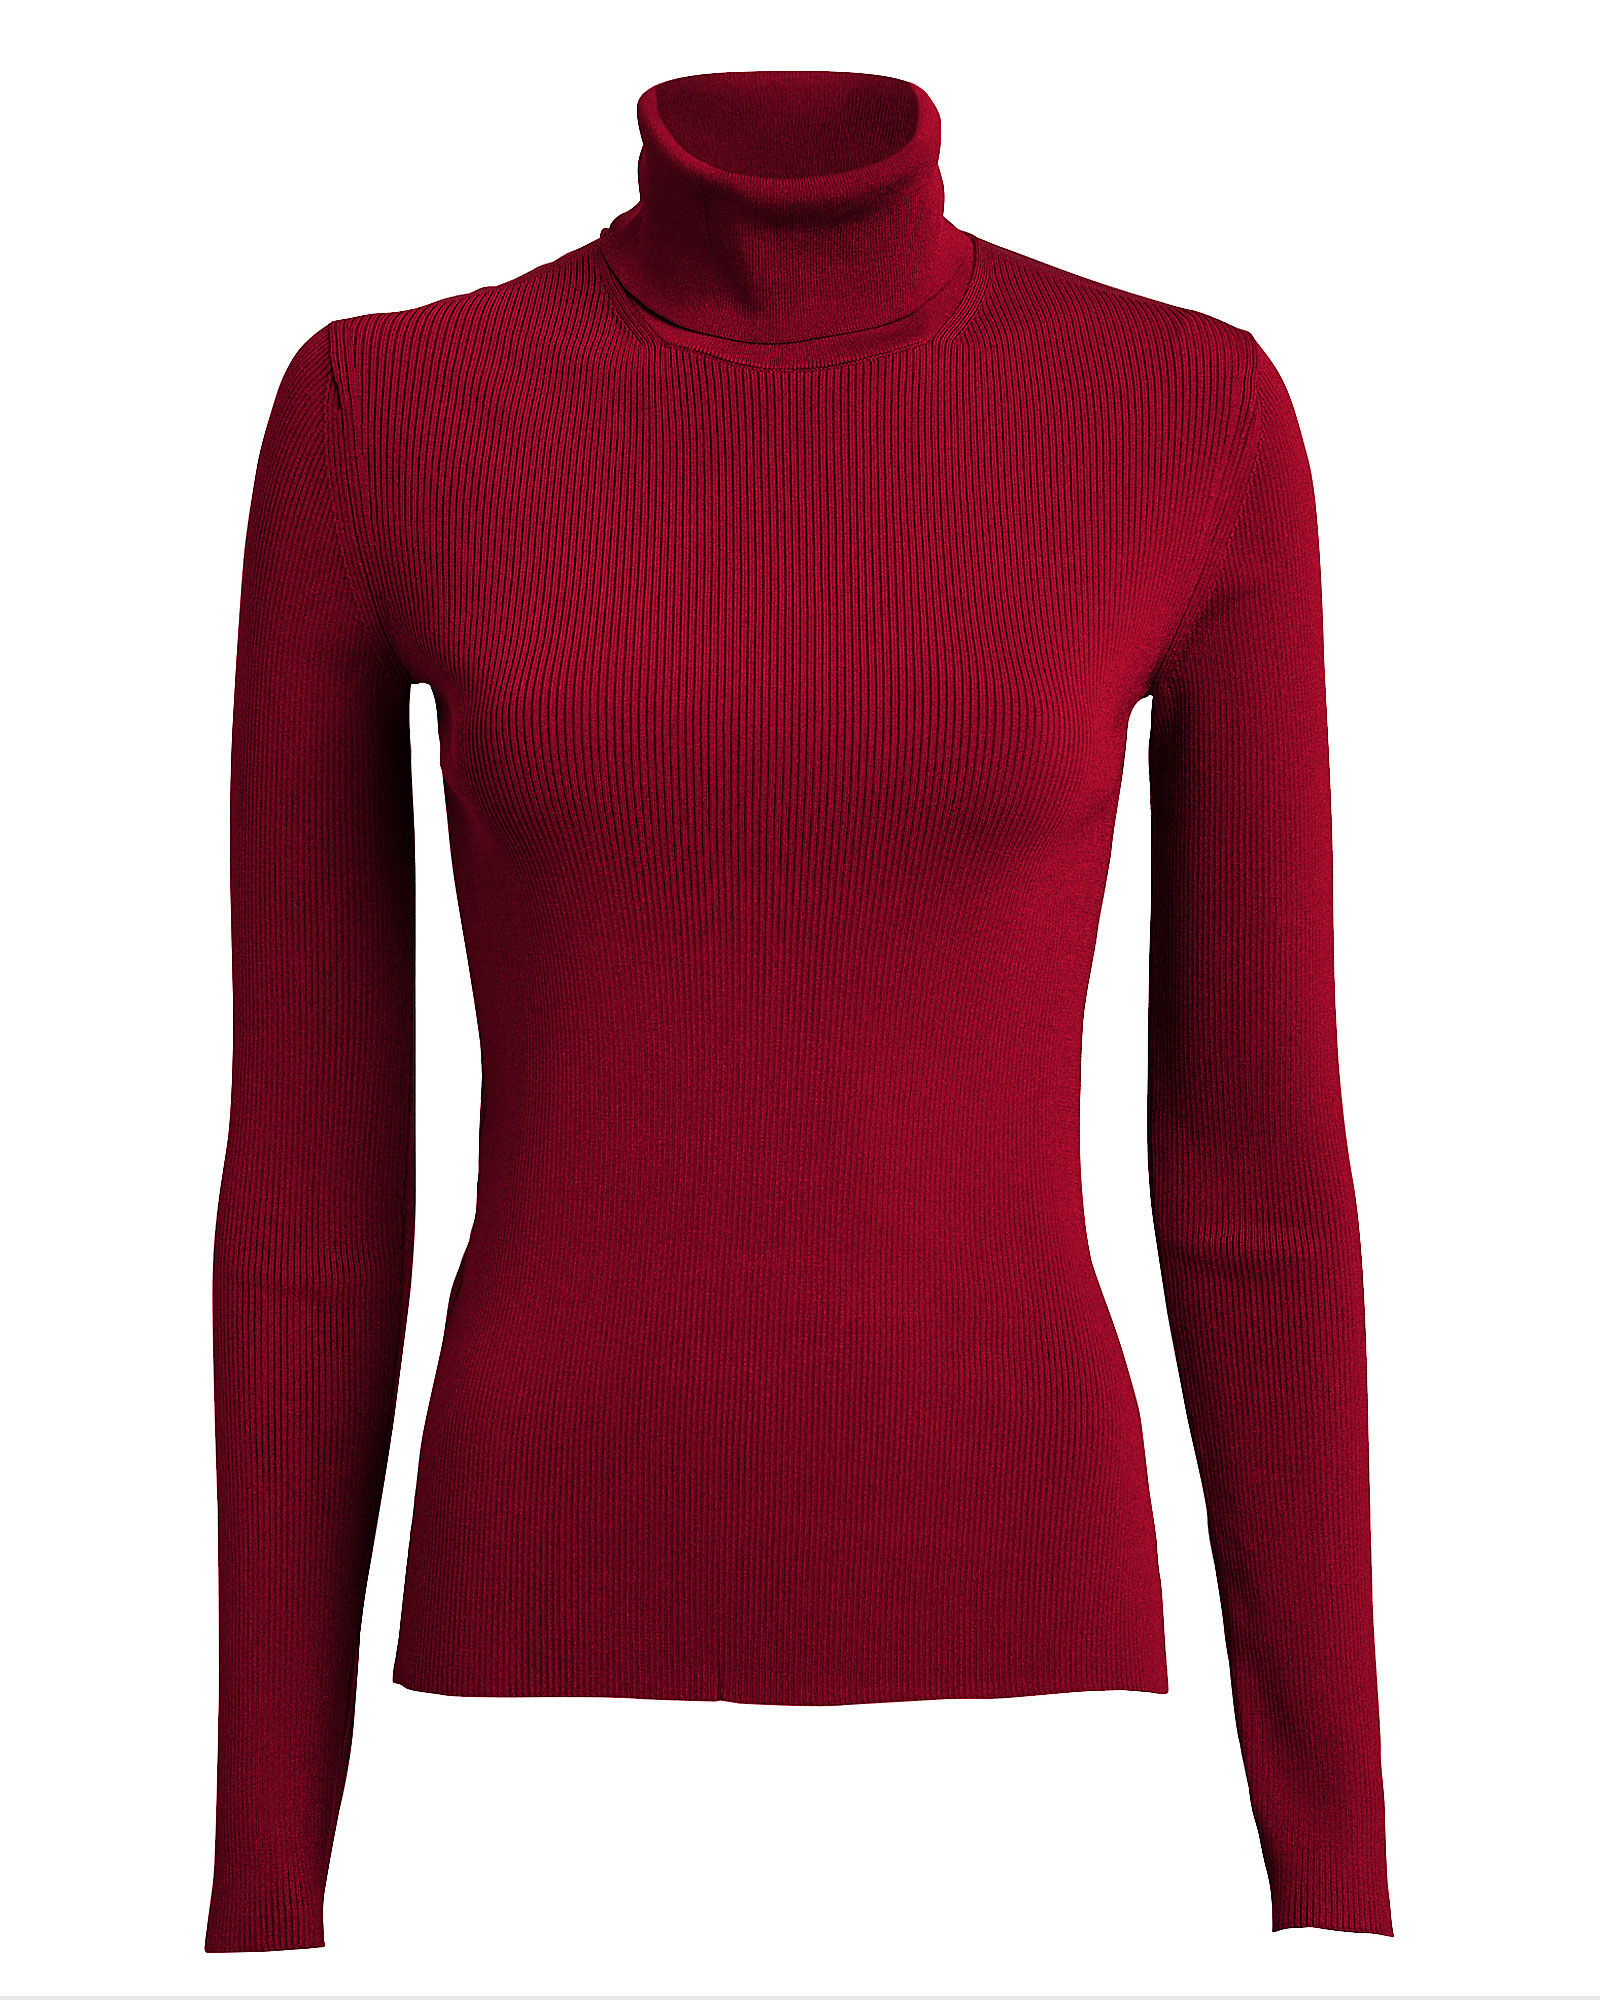 Ribbed Stretch Turtleneck Top, RED, hi-res